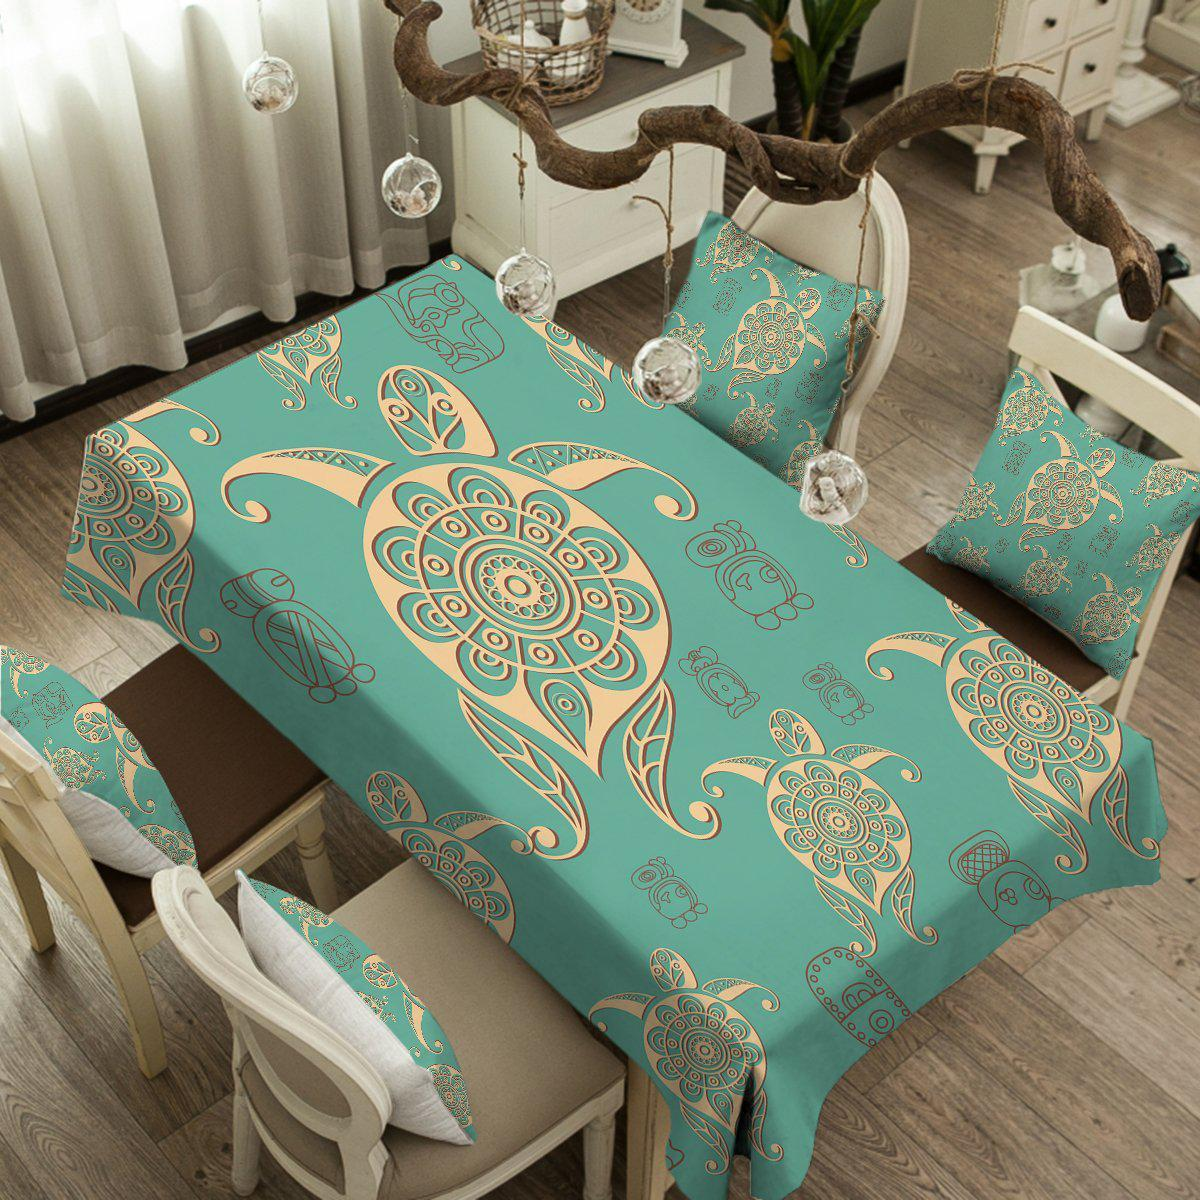 Turtles in Turquoise Tablecloth-Coastal Passion